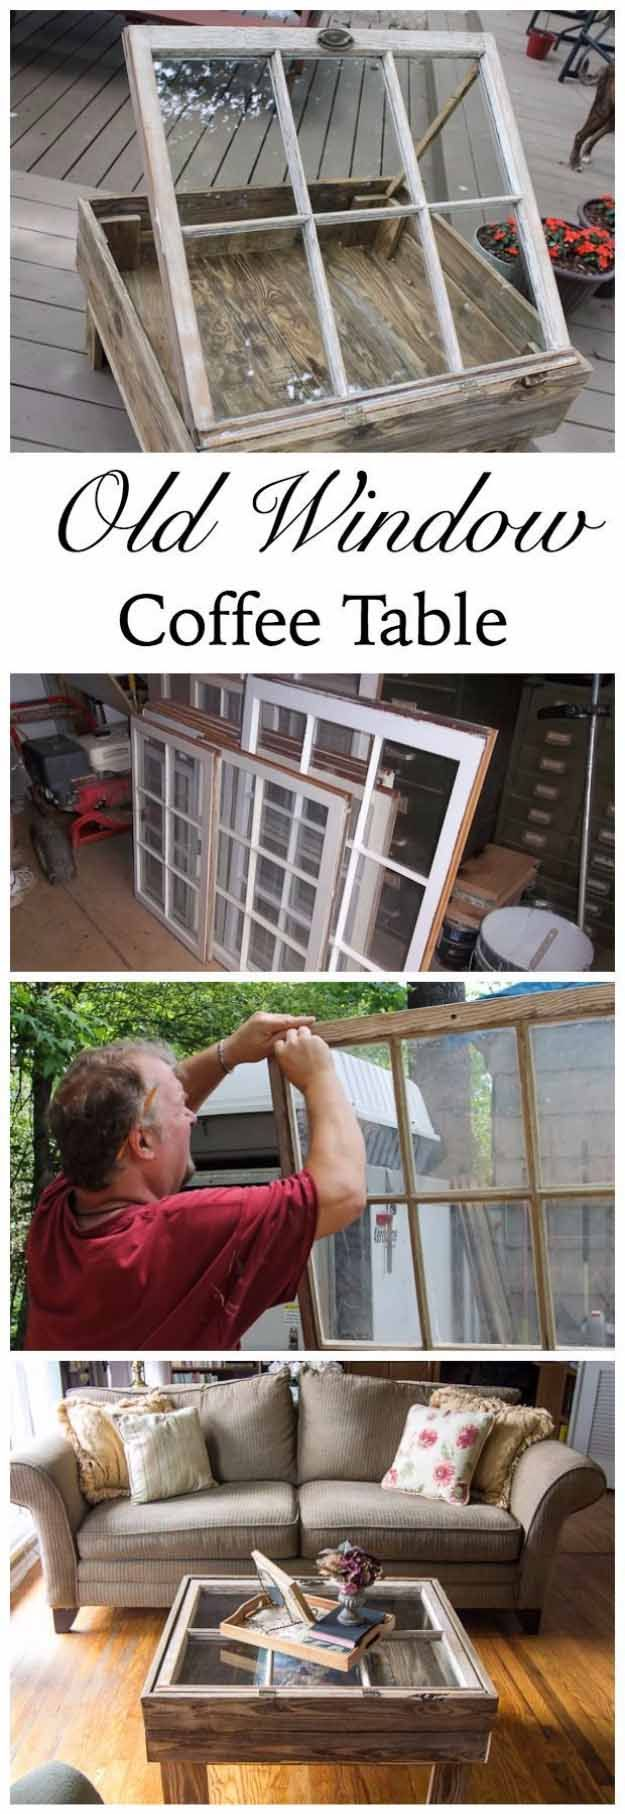 16 DIY Ideas for Coffee Tables 4